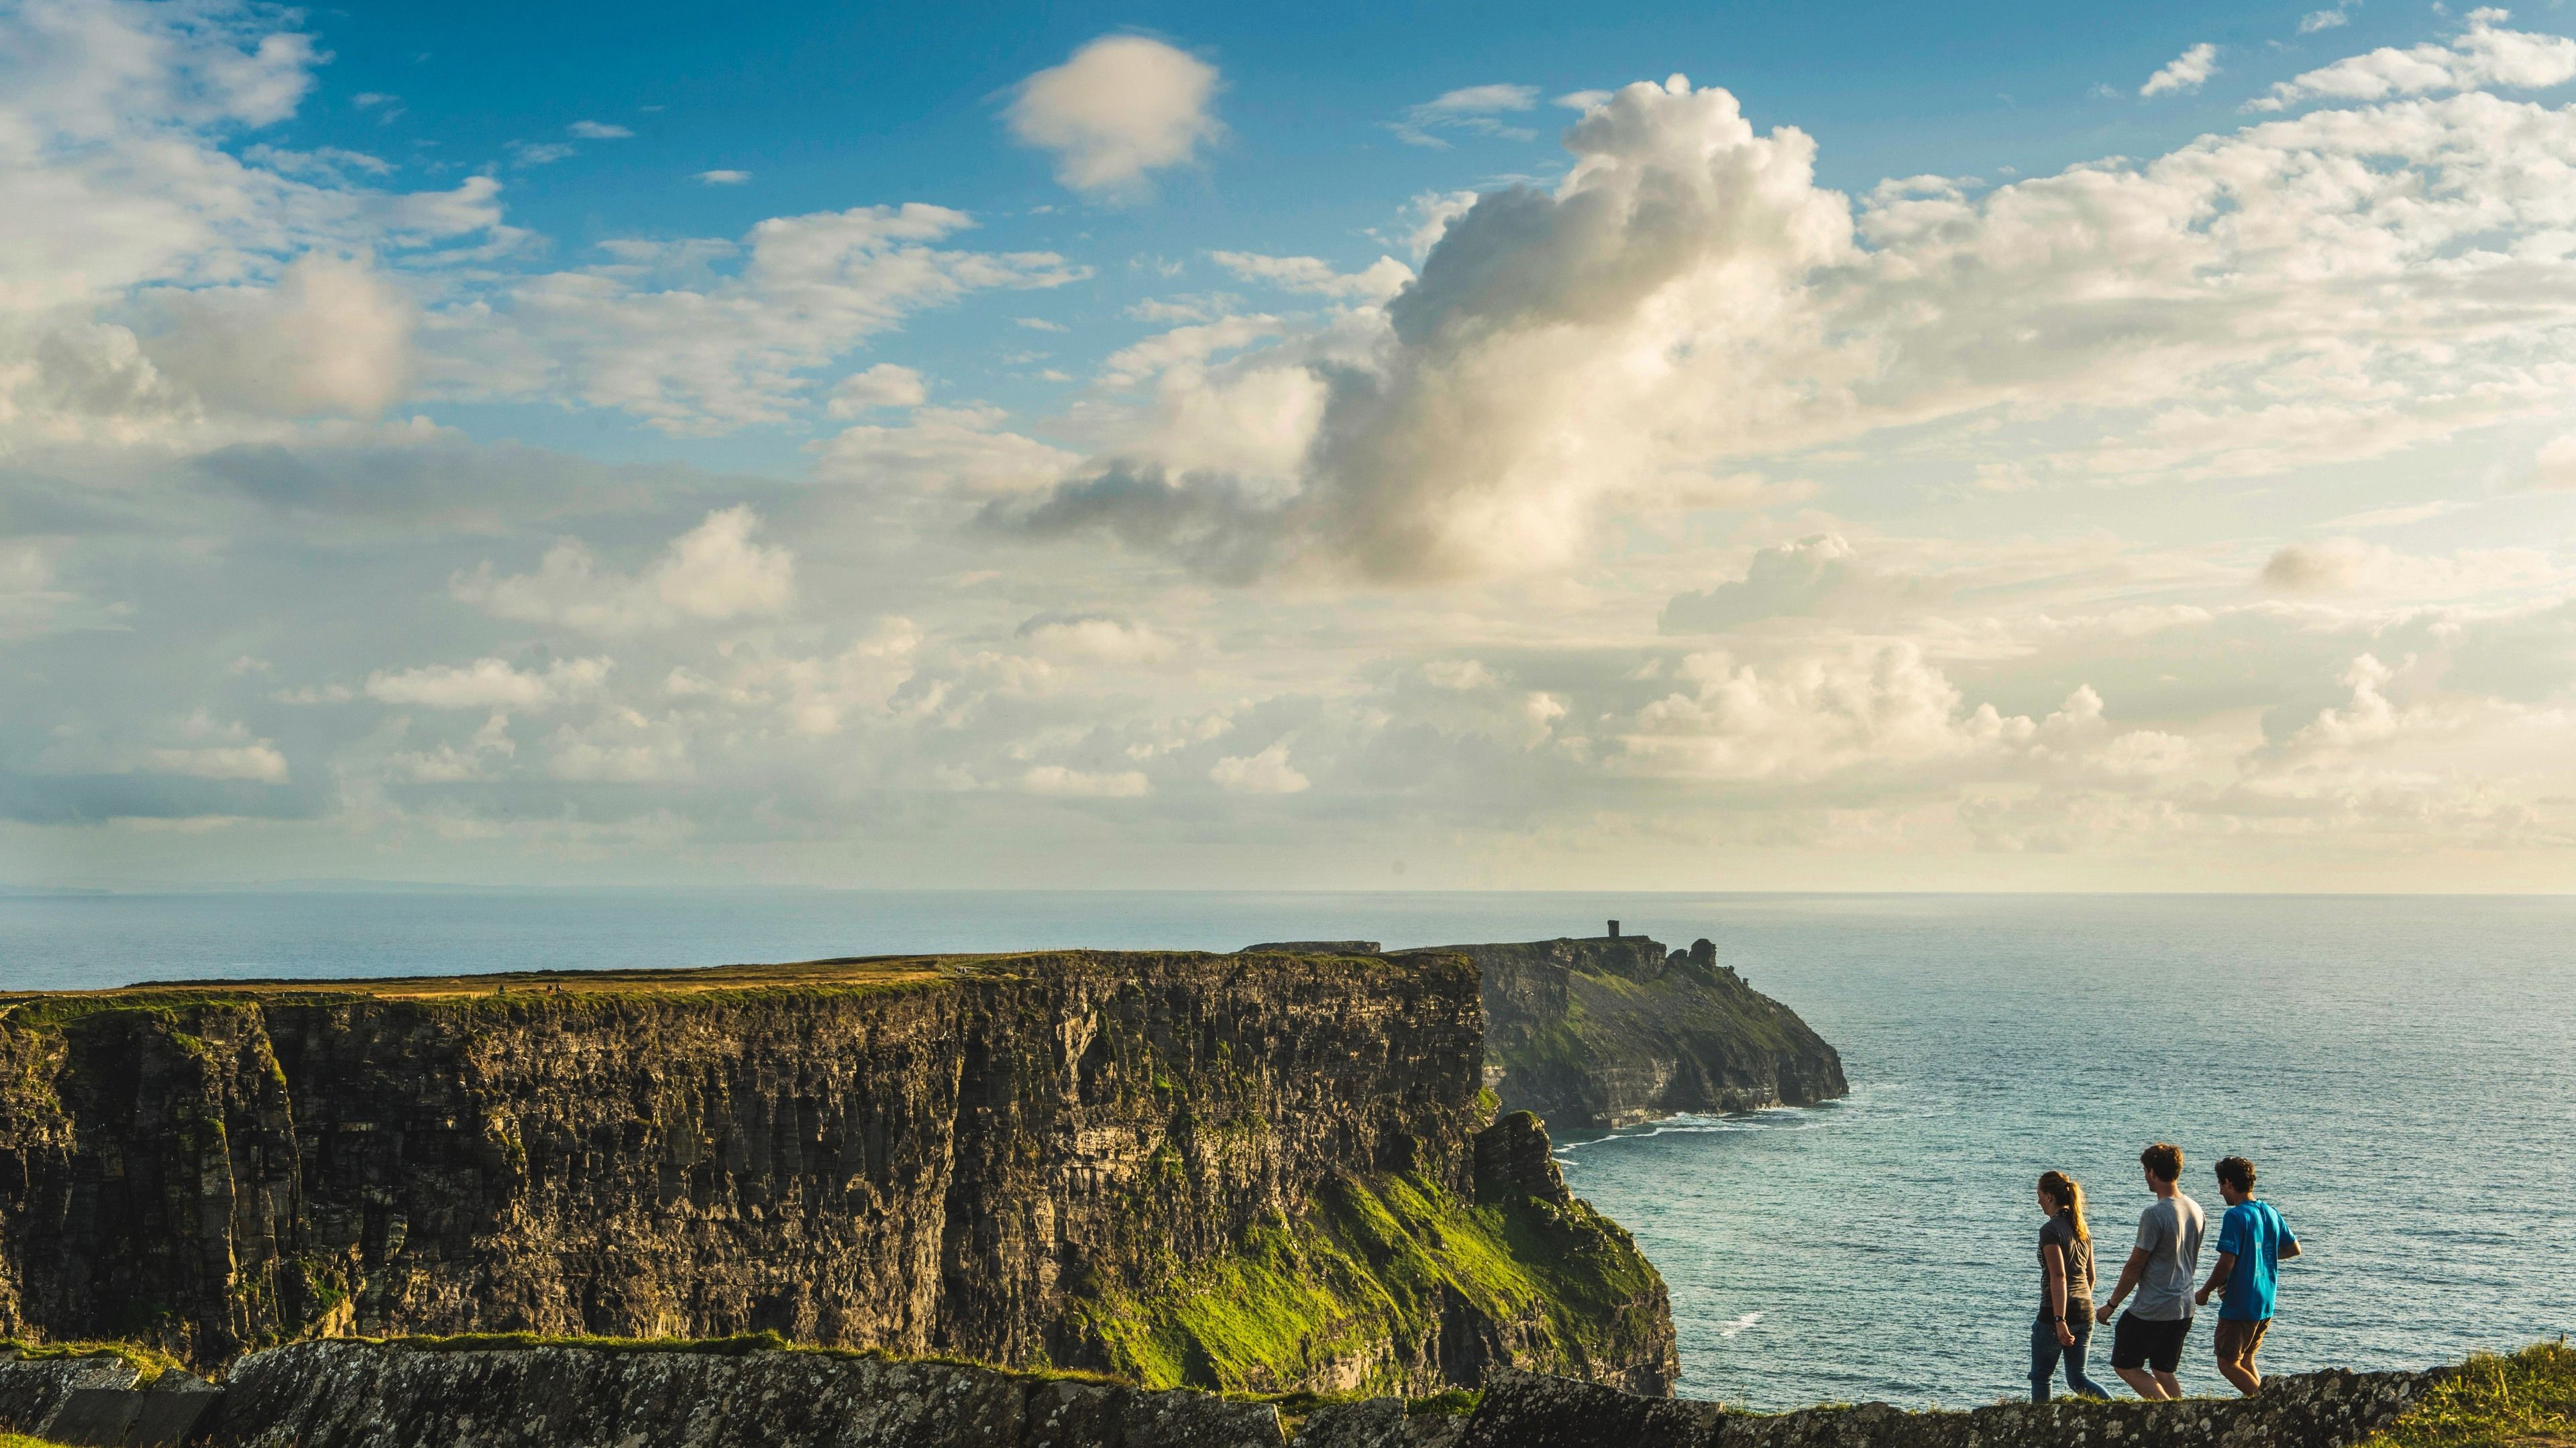 Beautiful view of Cliffs of Moher with hikers seen walking nearby.